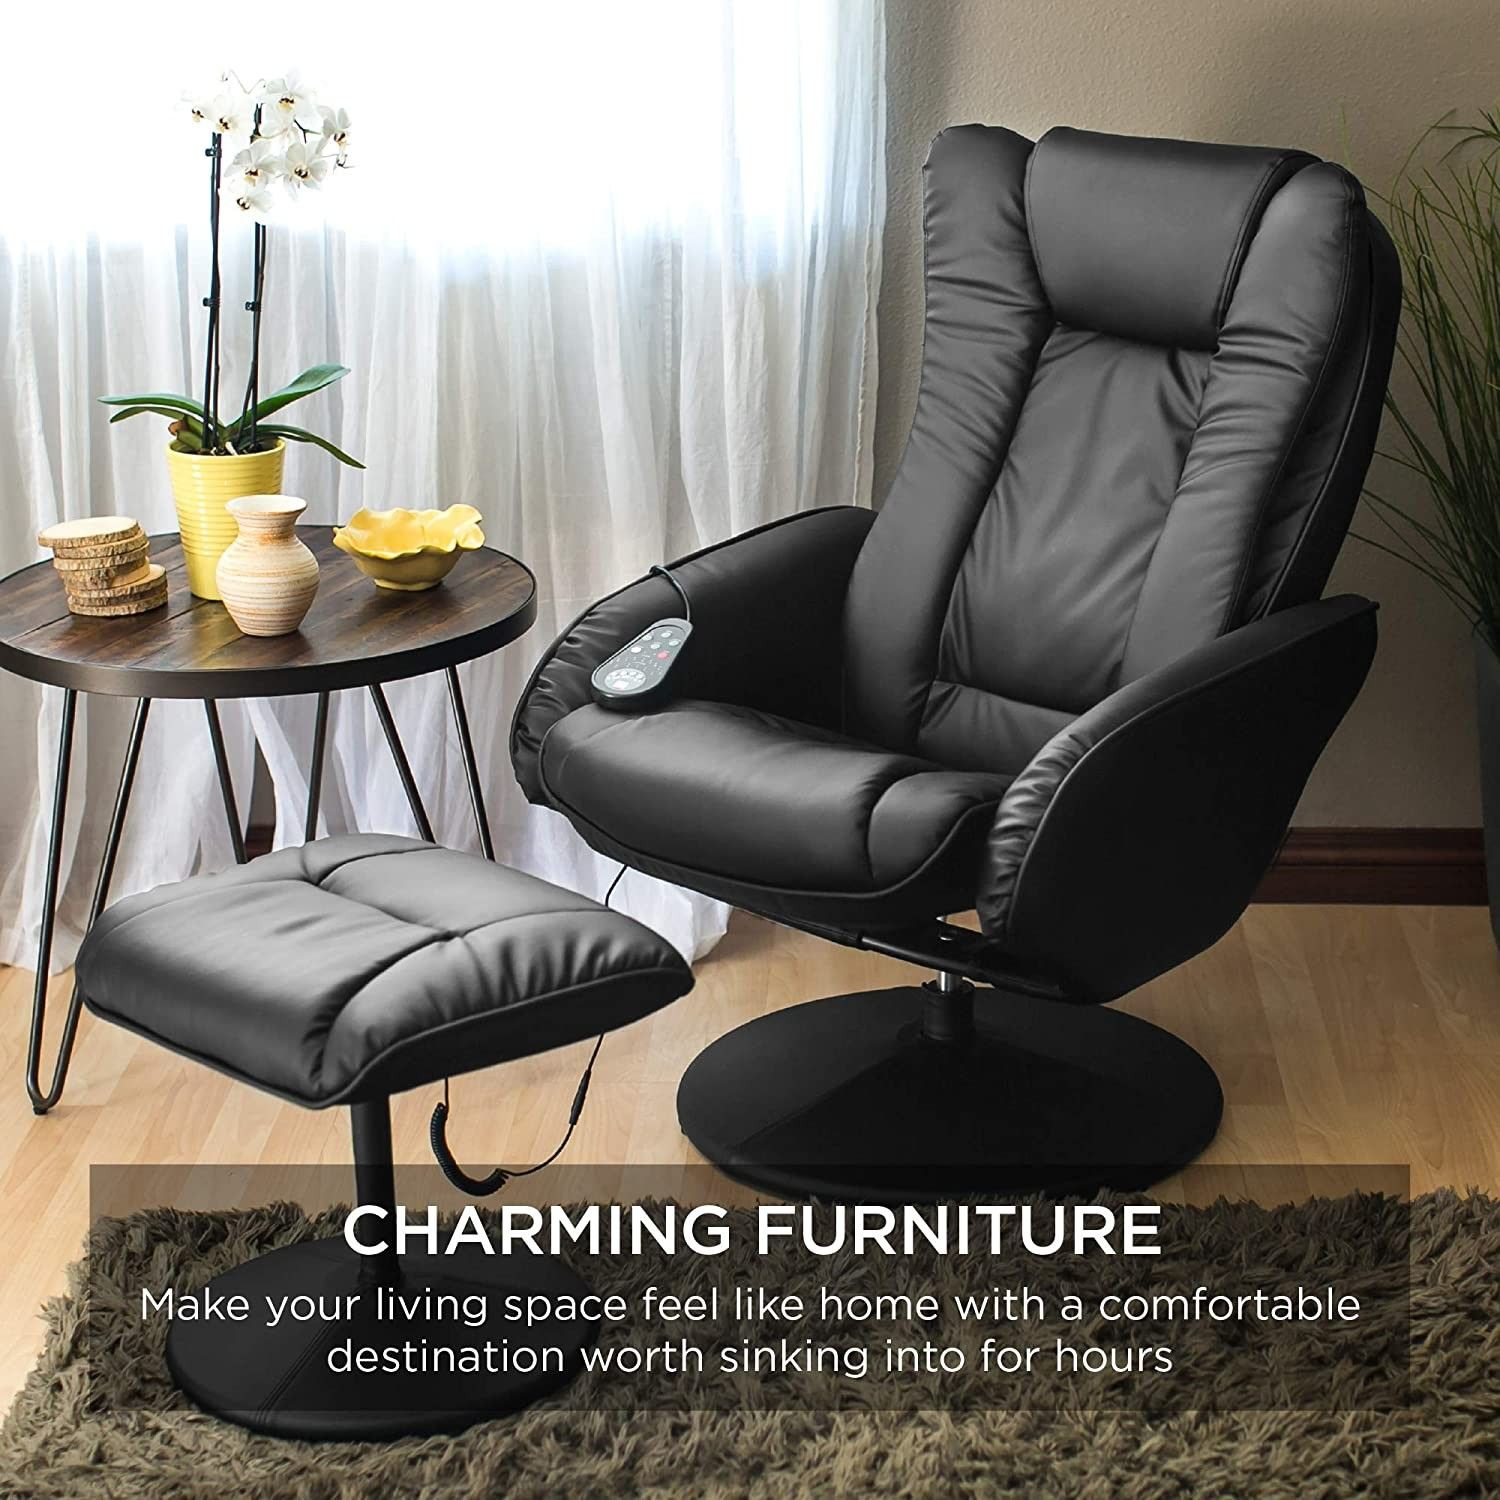 Electric Massage Recliner Chair with Stool Ottoman, Leather, Black